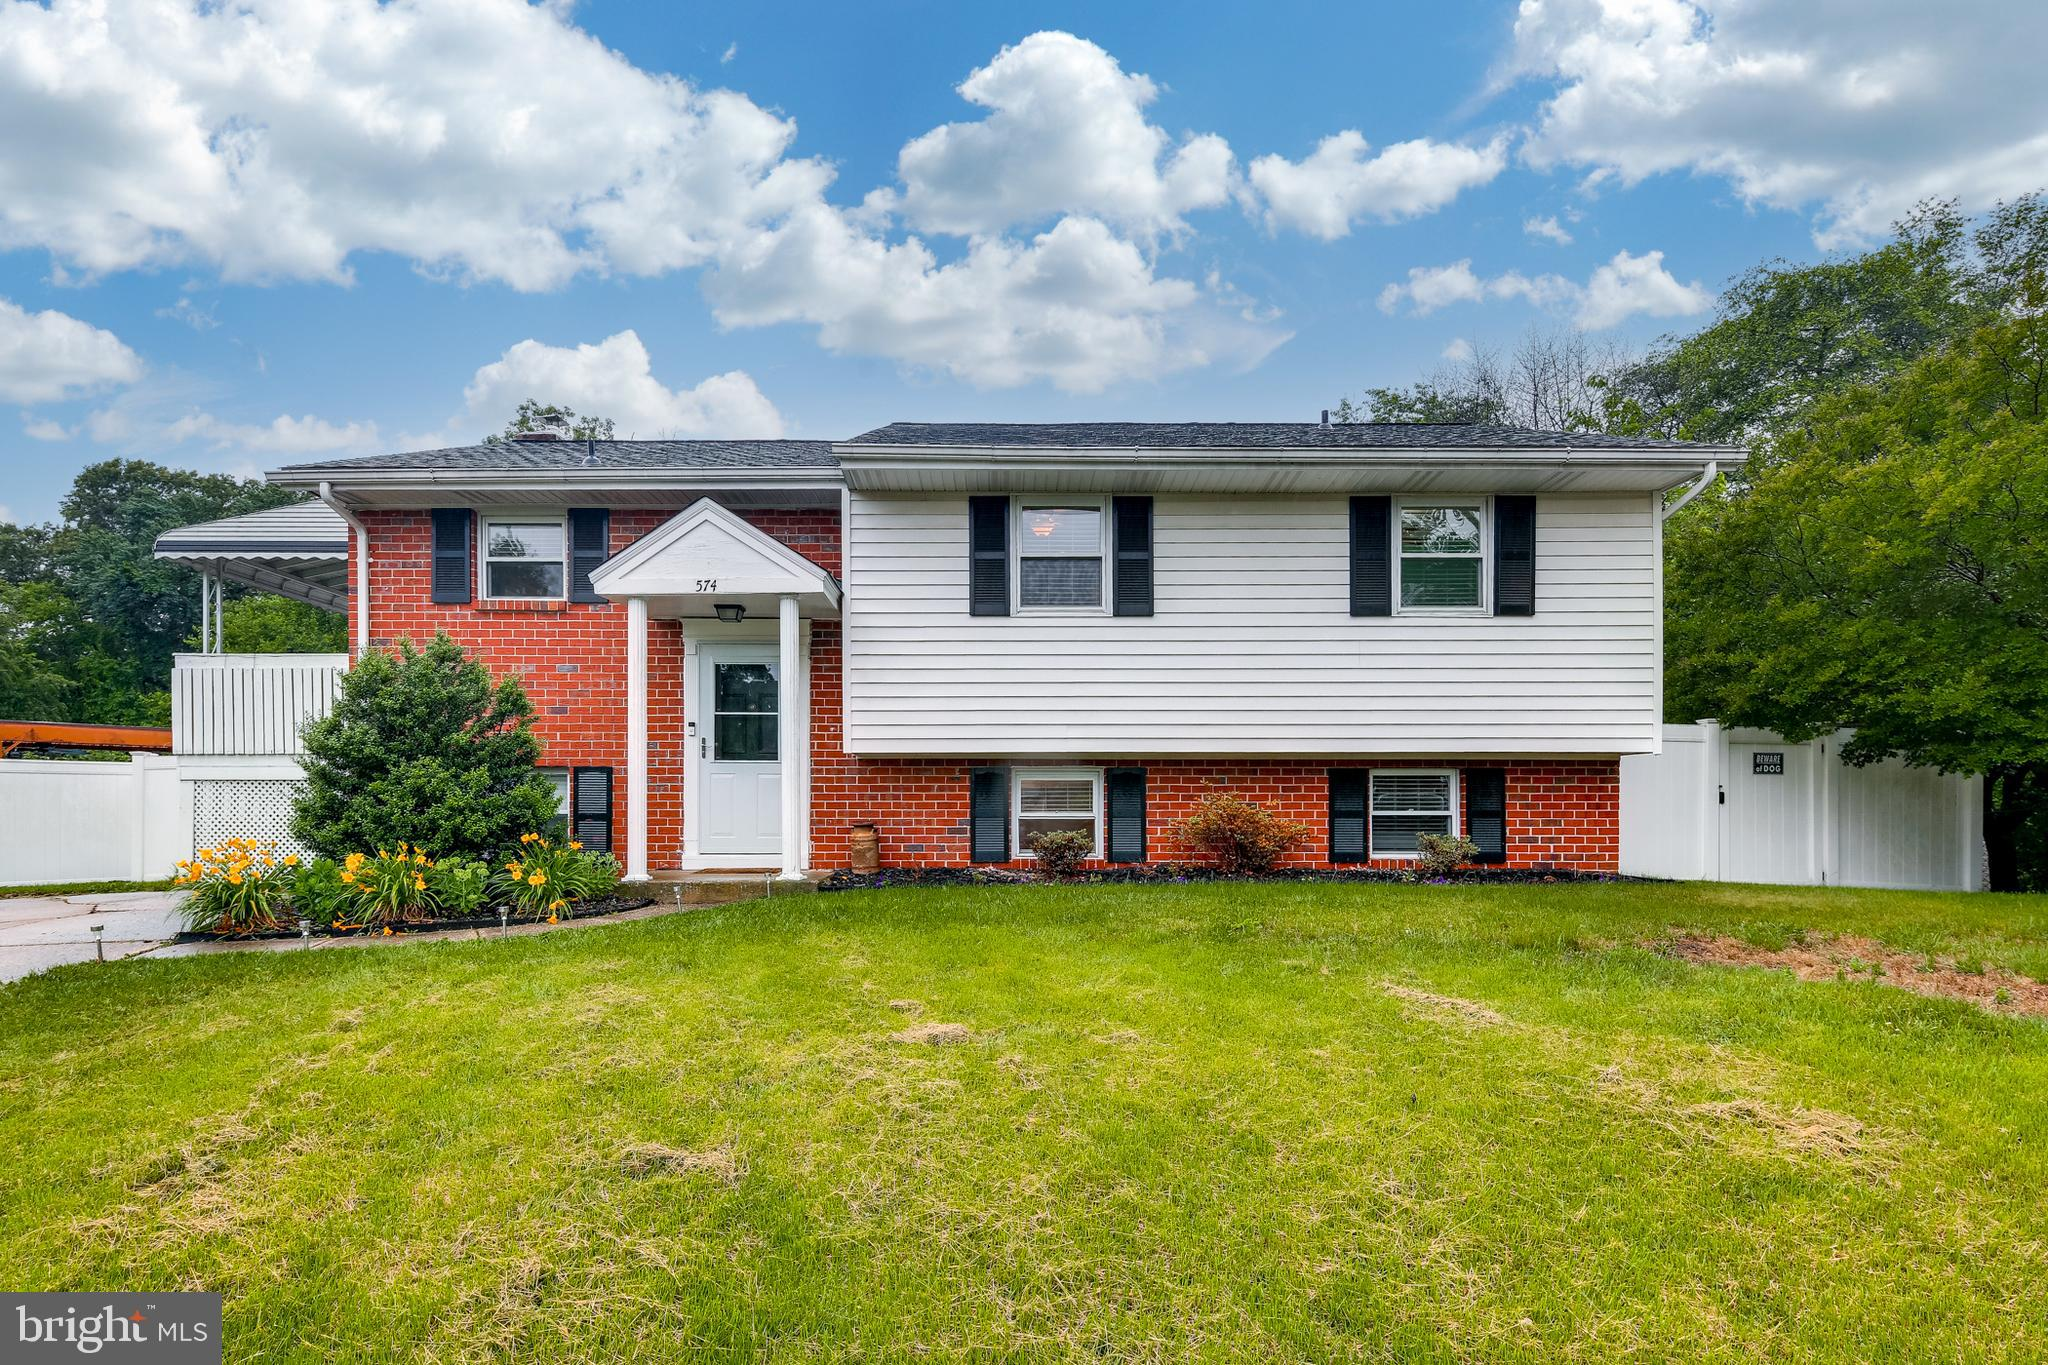 Beautiful split foyer home located on a cul de sac and backing to trees. This very well-kept home fe